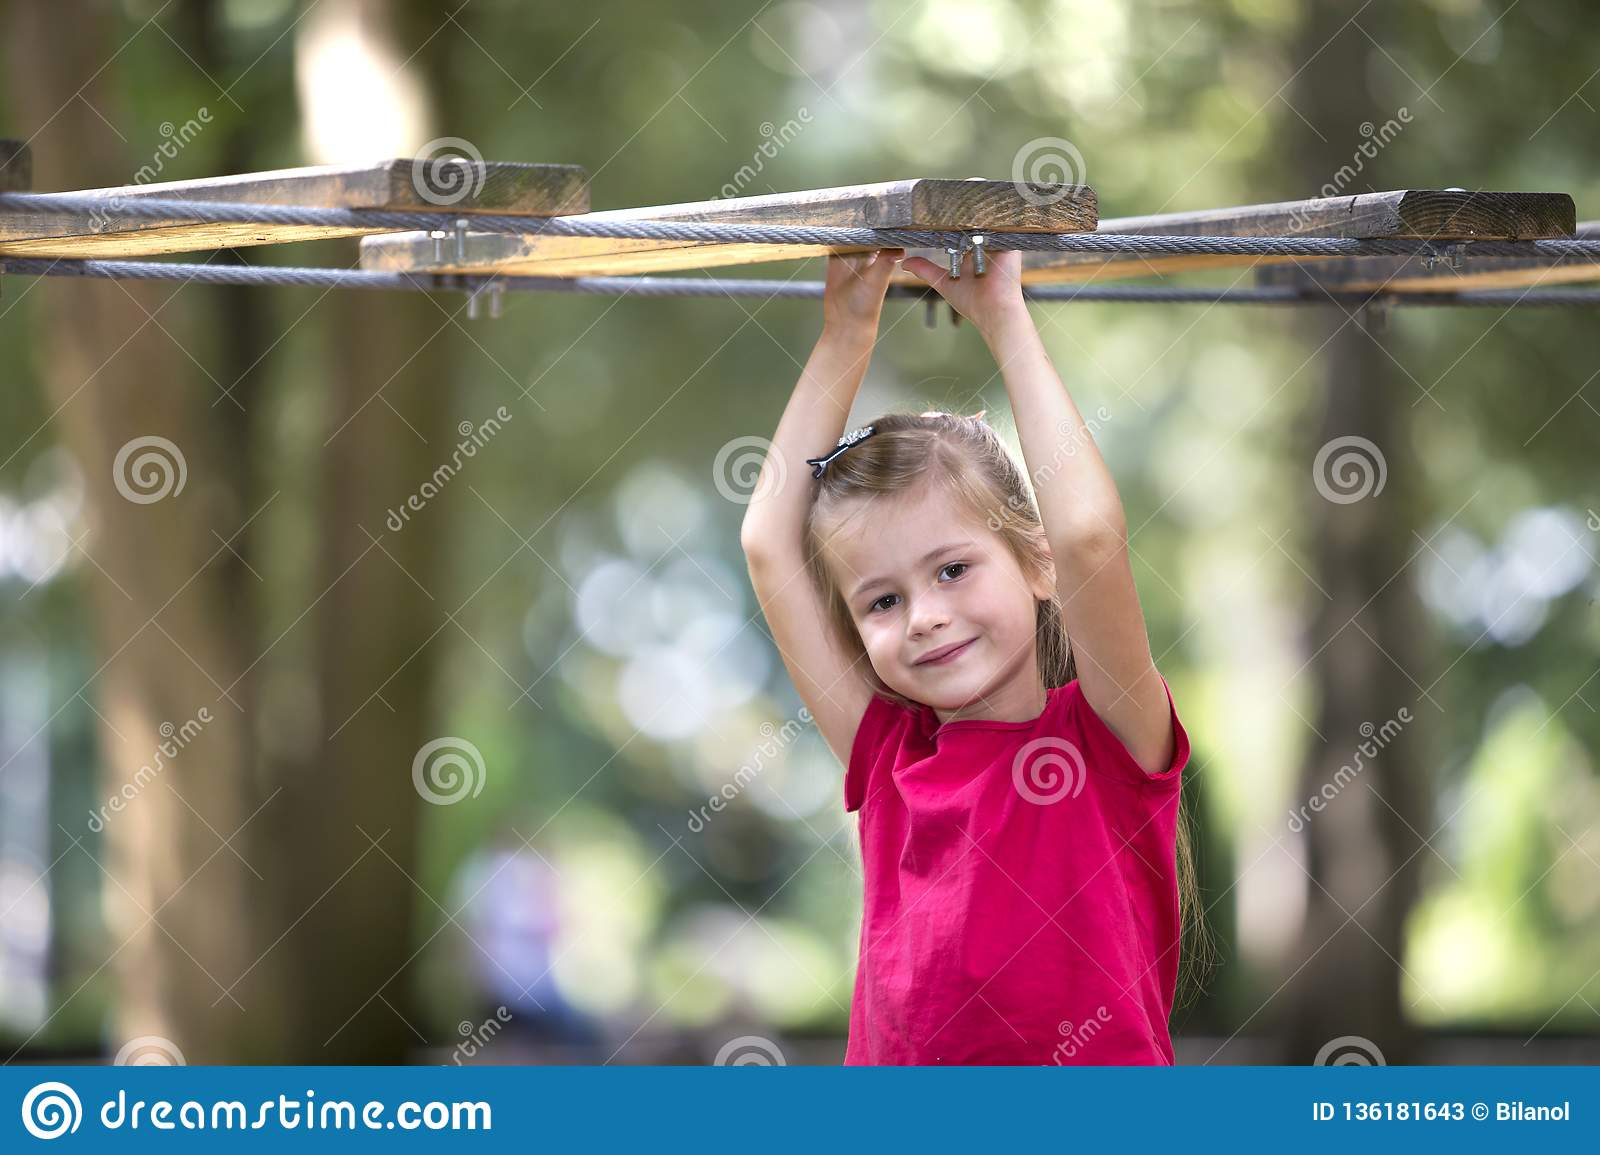 Portrait of cute adorable smiling blond child girl in summer pink dress with raised arms holding to rope way on blurred green